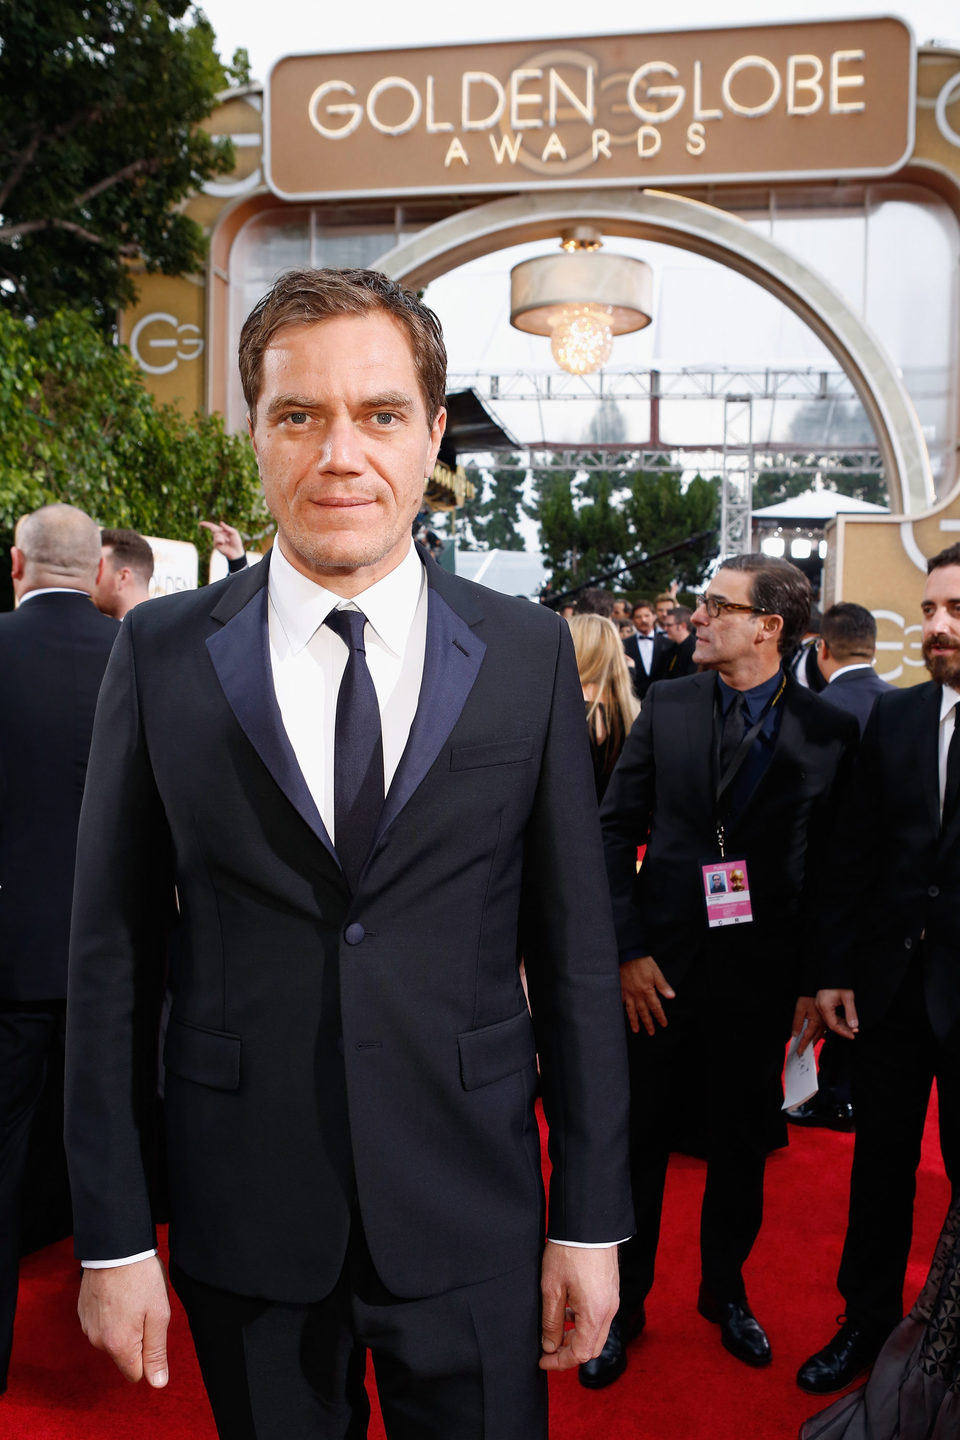 Michael Shannon at the 2016 Golden Globes red carpet